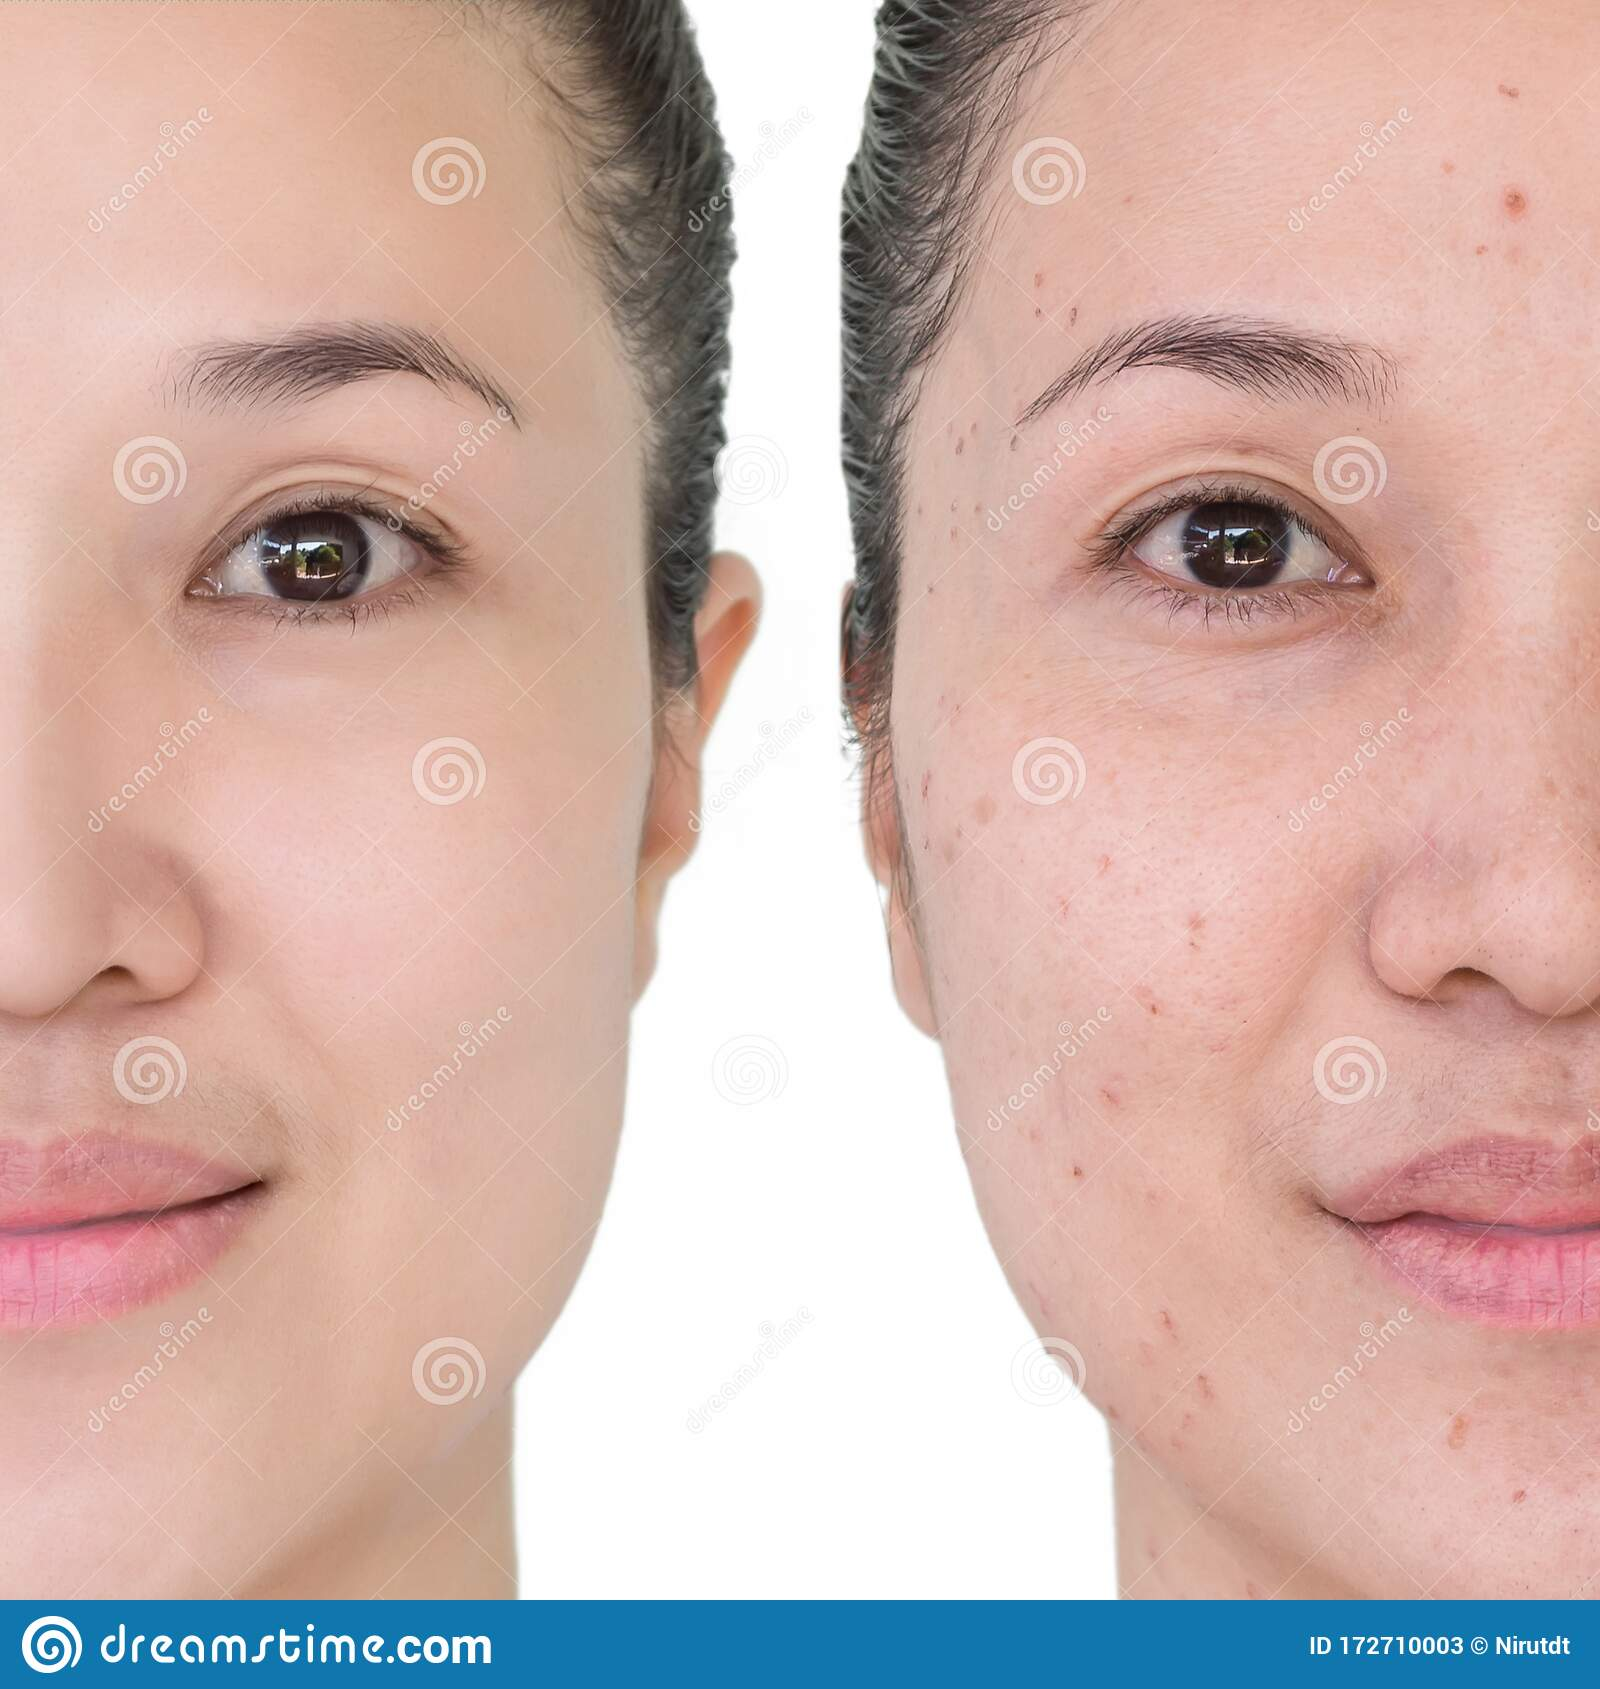 Before And After Laser Treatment Stock Image Image Of Cosmetic